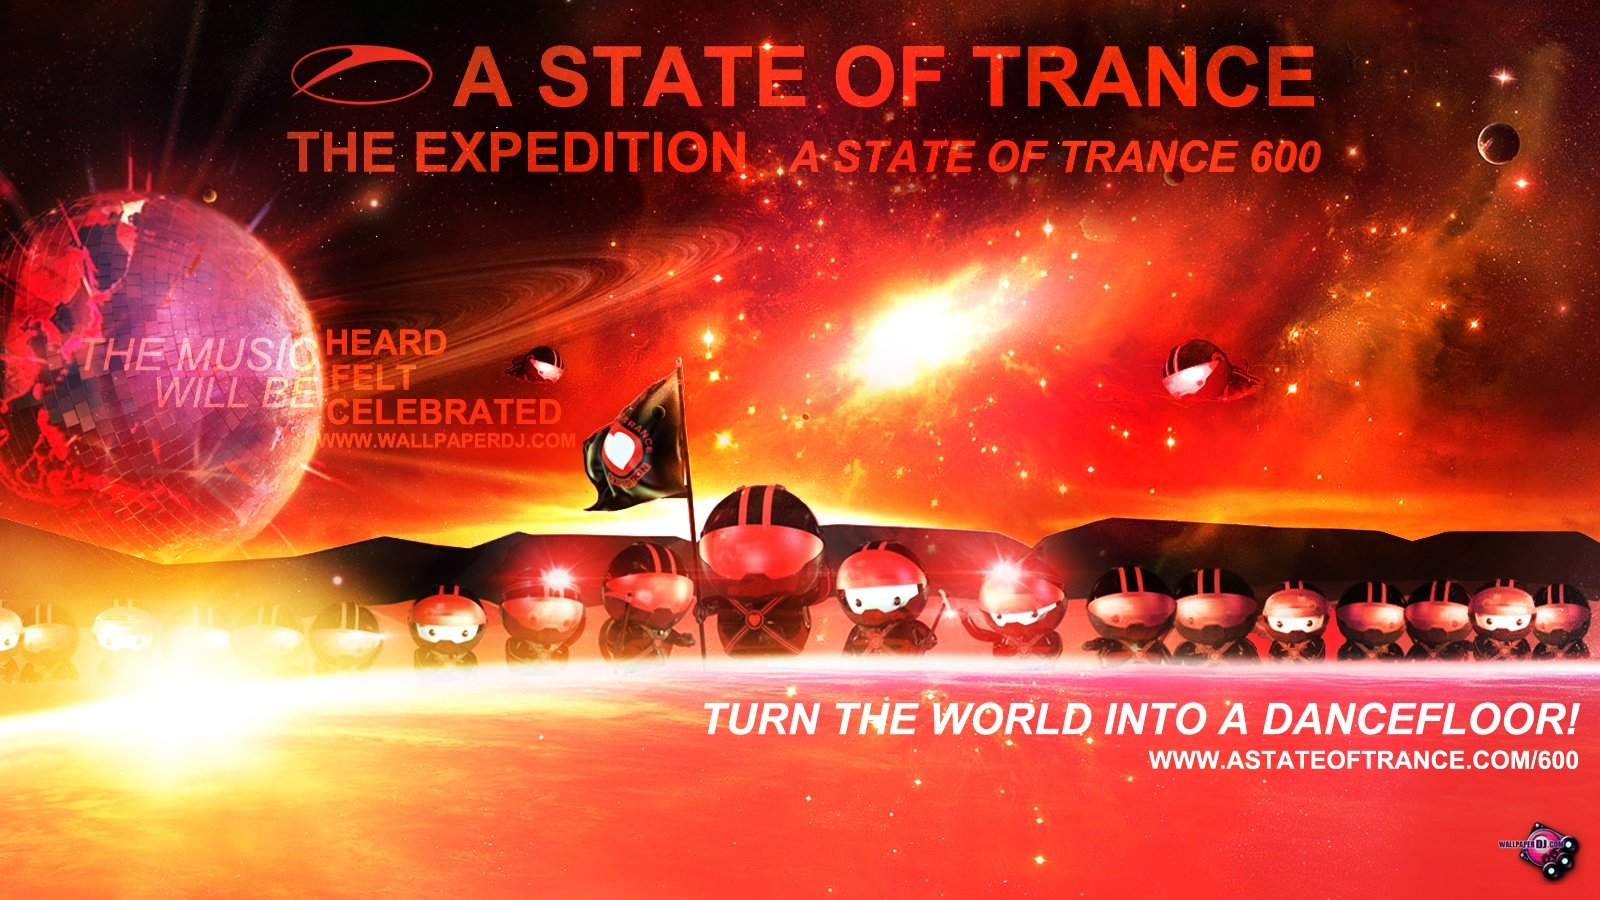 1600x900 A State Of Trance 600 wallpaper music and dance wallpapers 1600x900